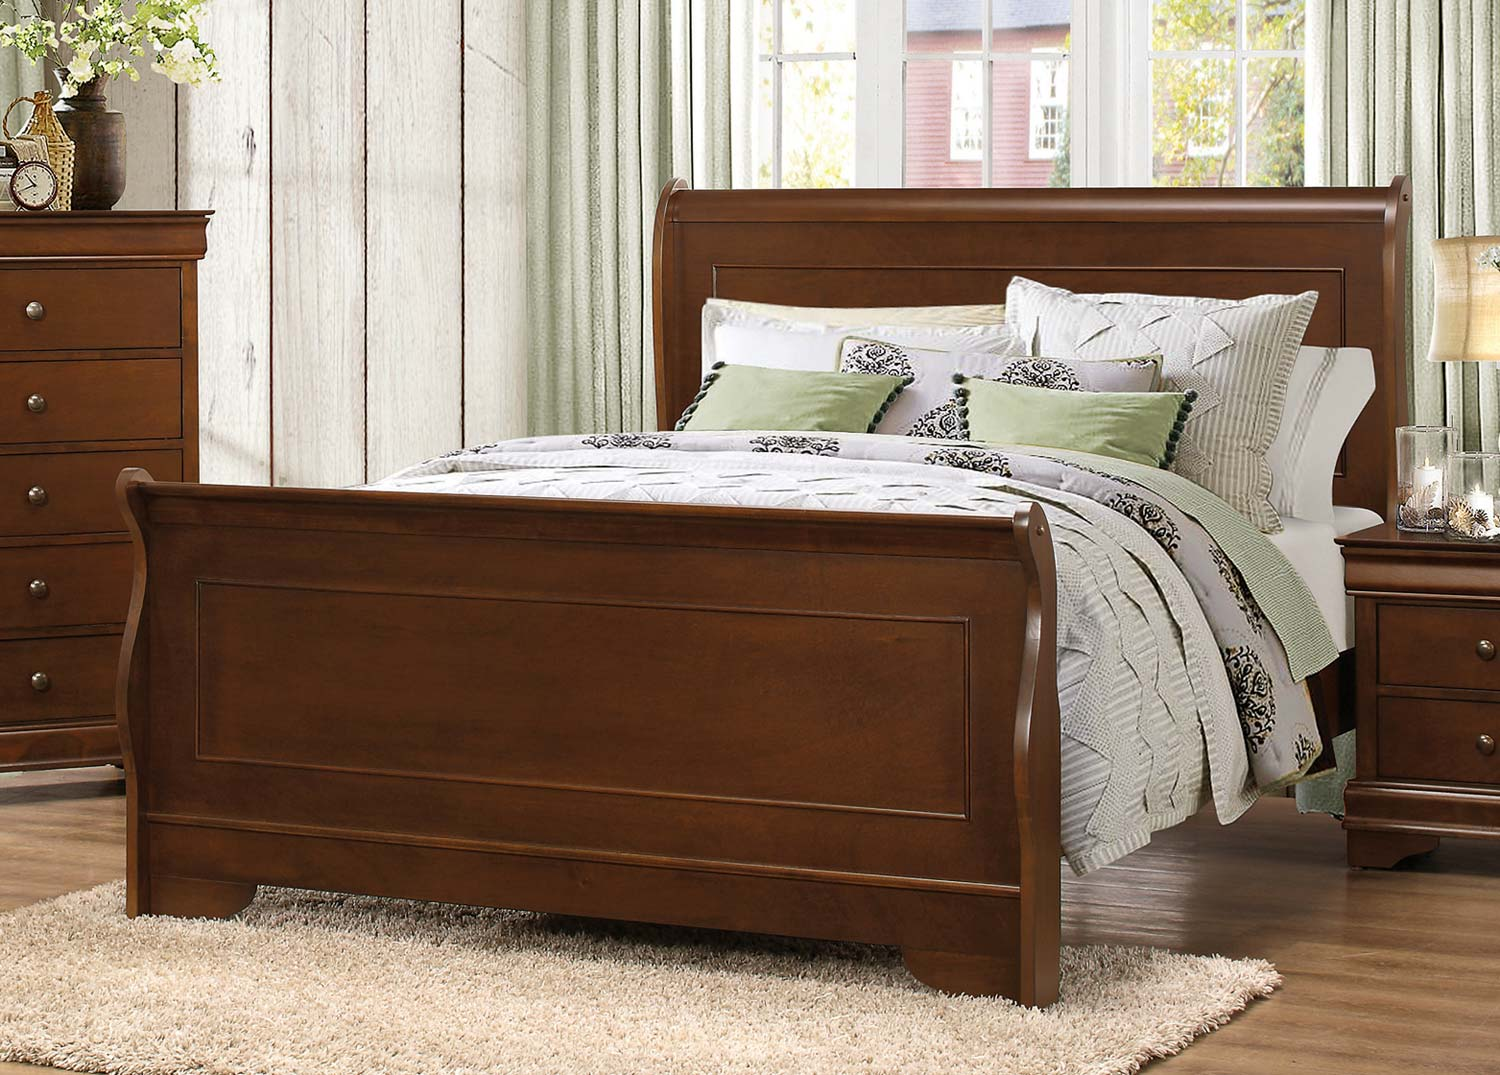 Homelegance Abbeville Sleigh Bed - Brown Cherry